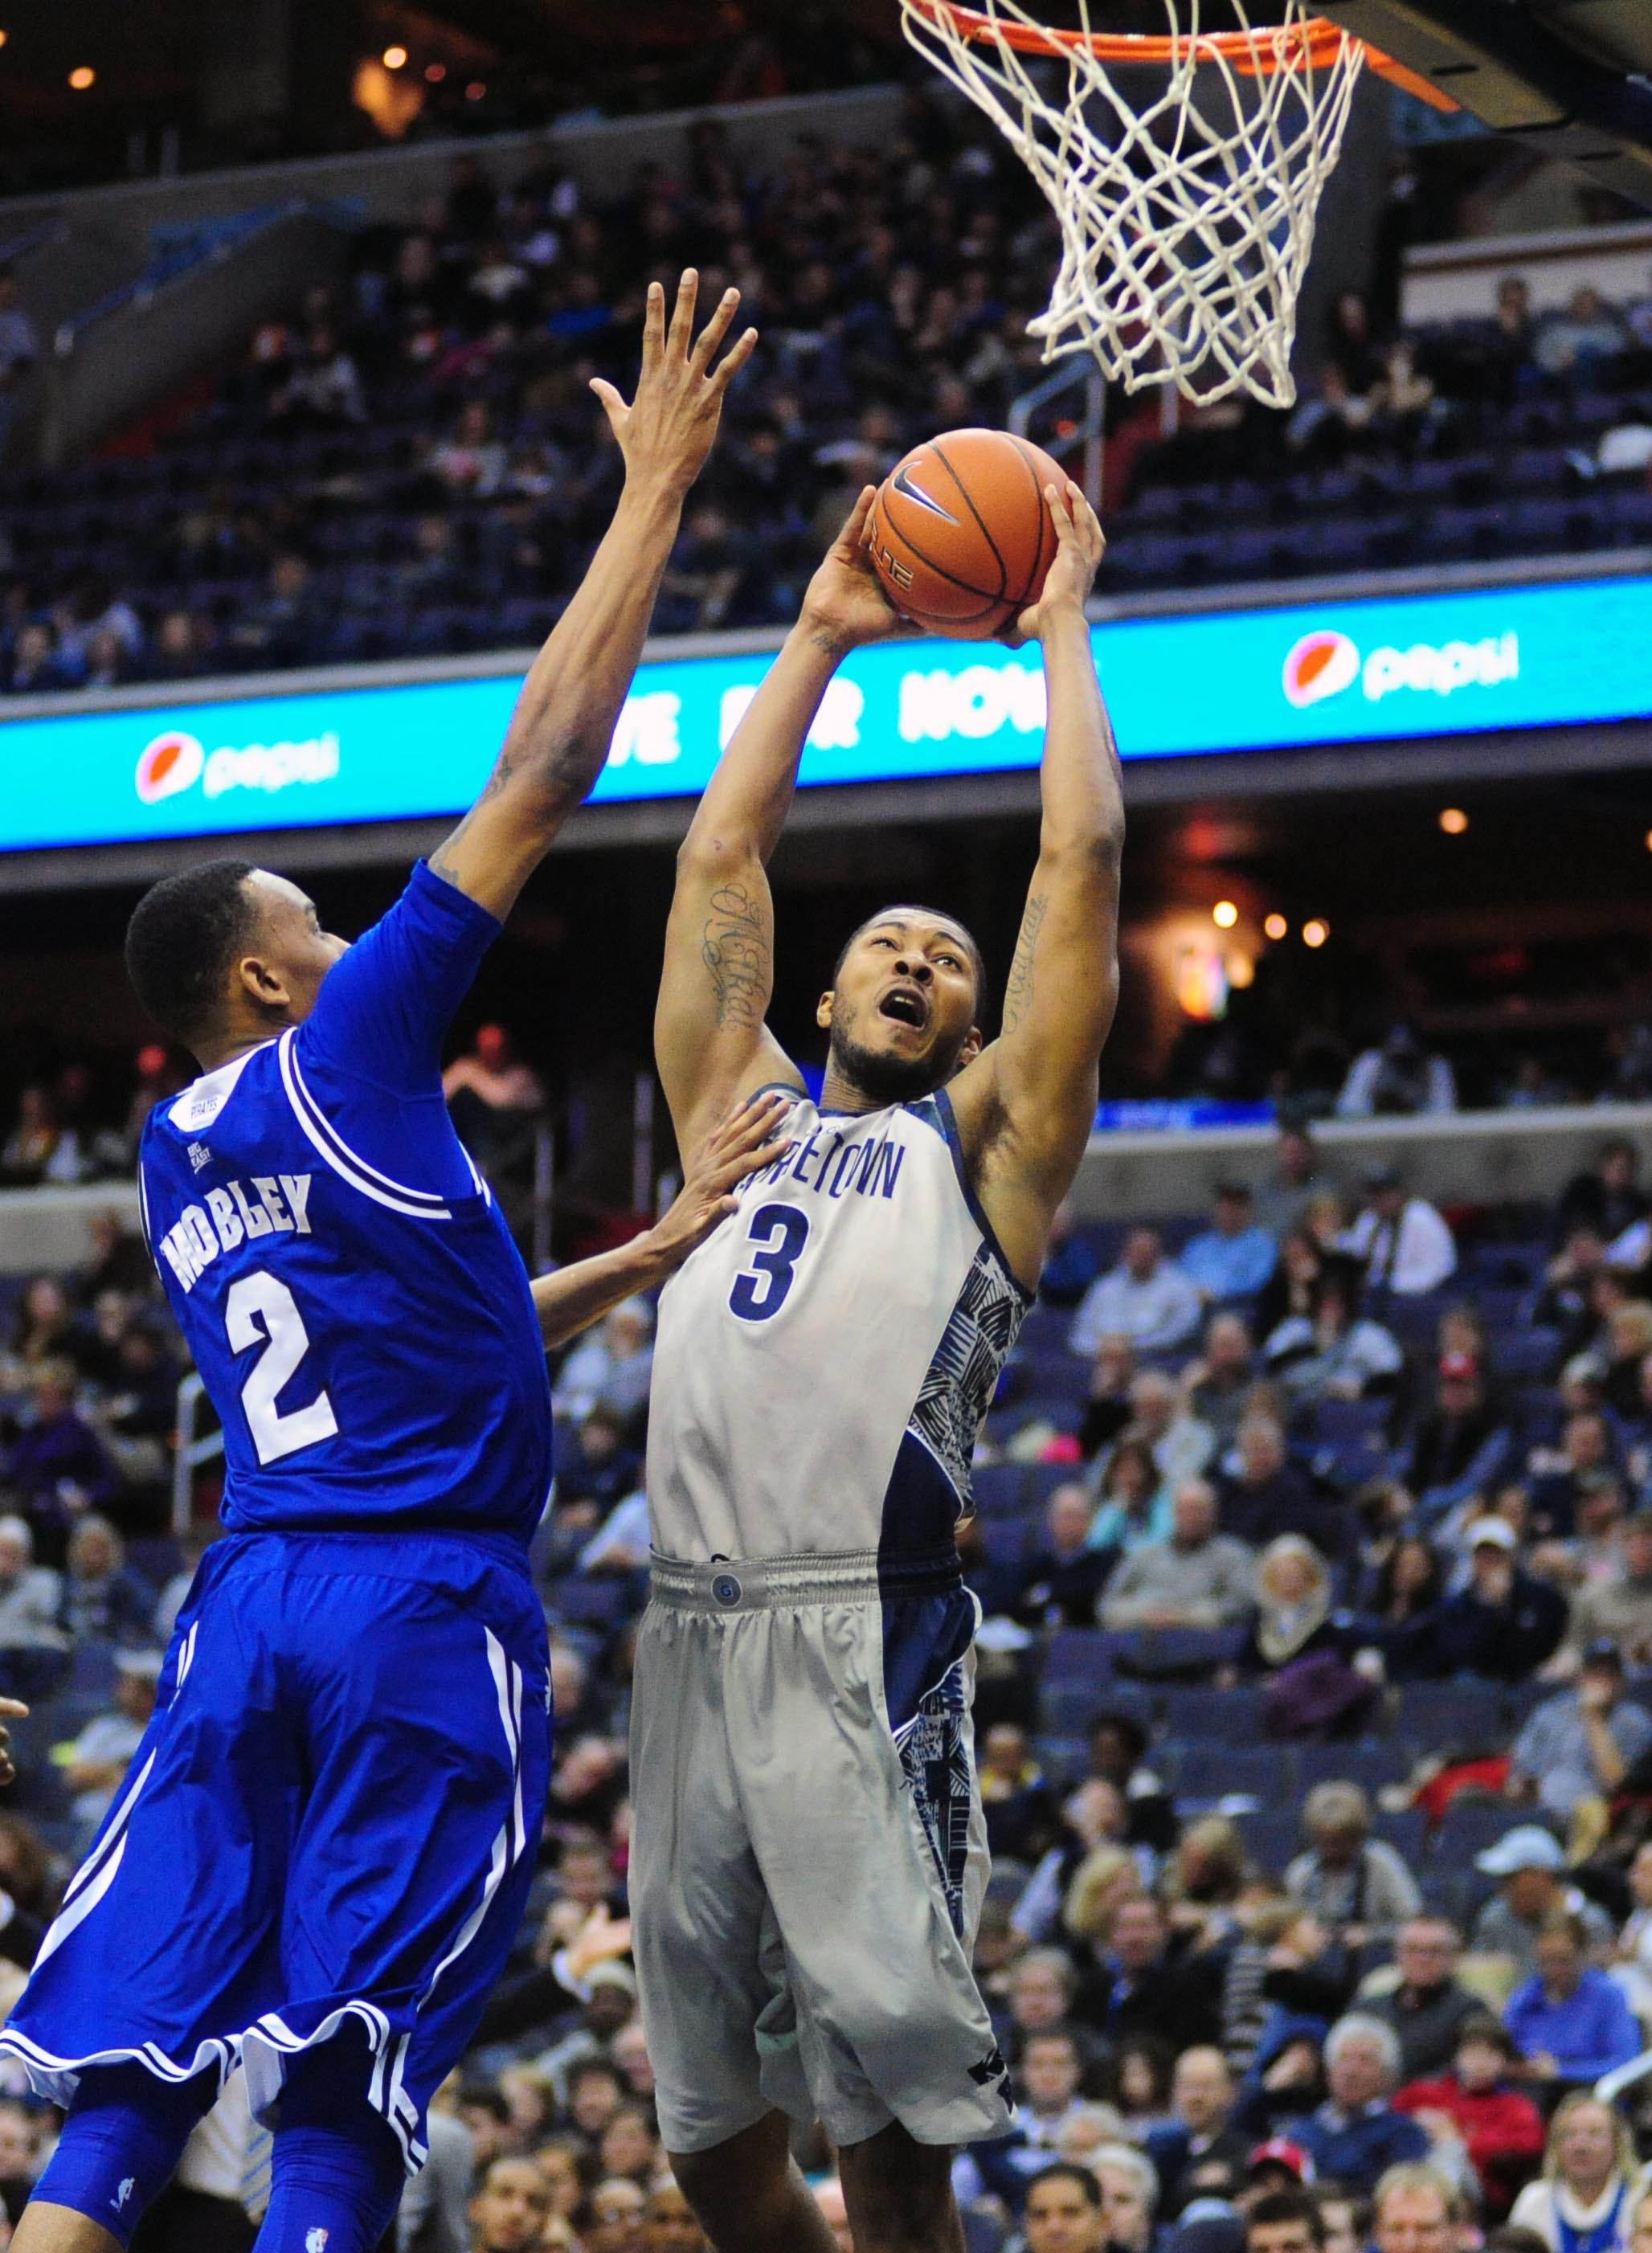 The Georgetown University men's basketball team closes out a weekend homestand on Monday, Jan. 20, hosting BIG EAST Conference rival Marquette.  Tip-off at Verizon Center is slated for 9 p.m.